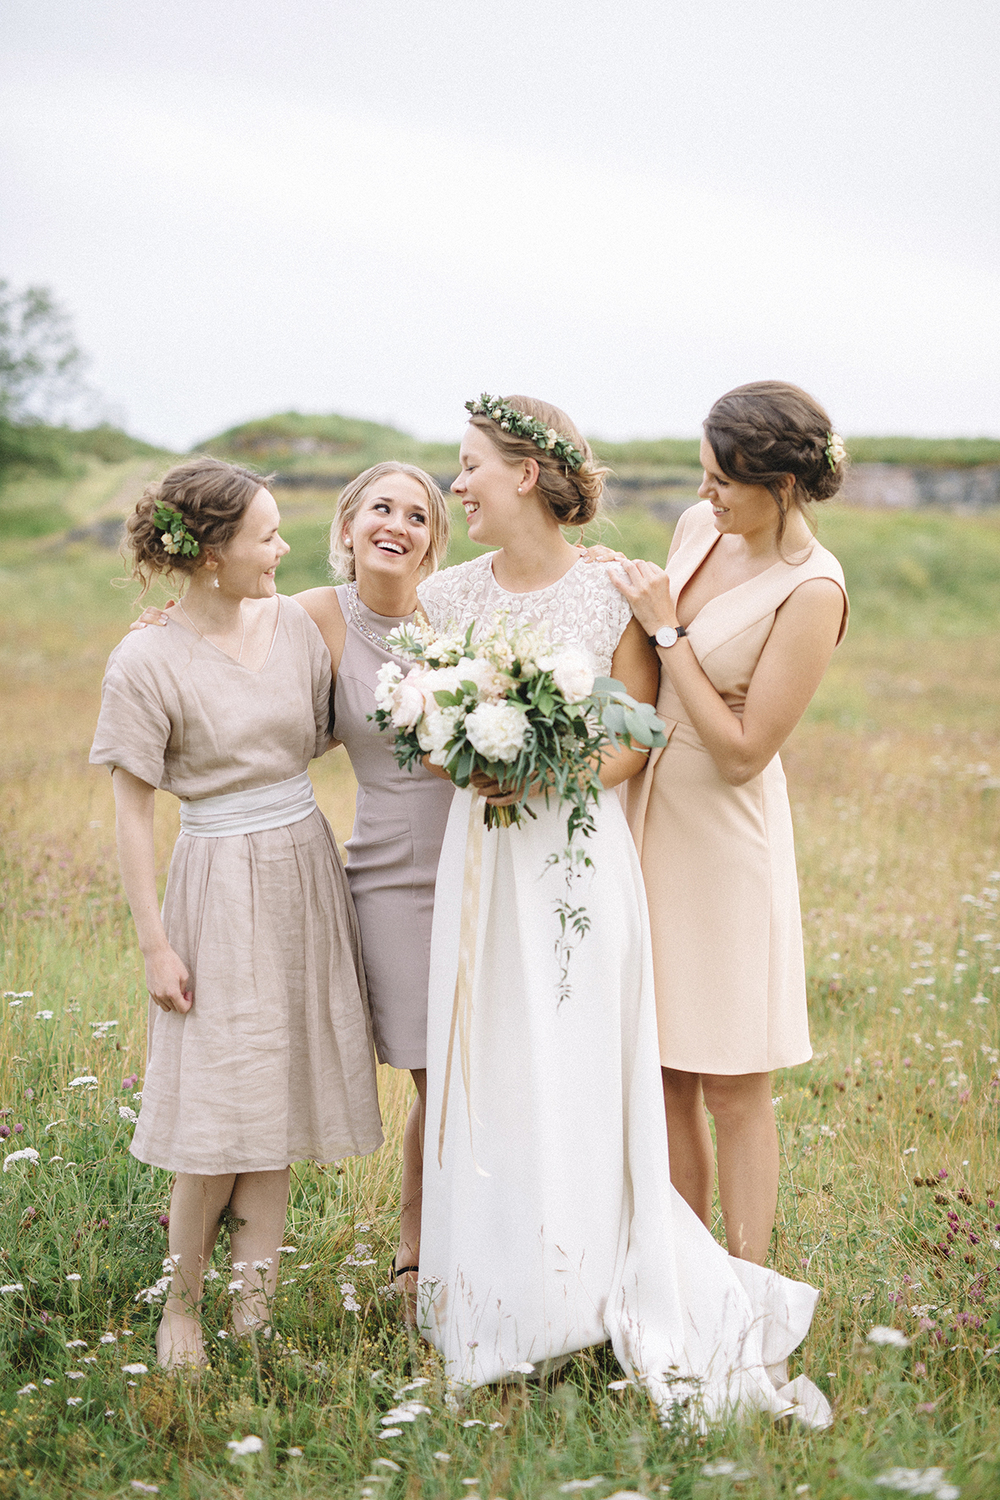 Laura & Jirko's natural summer wedding at Tenalji von Fersen, Suomenlinna